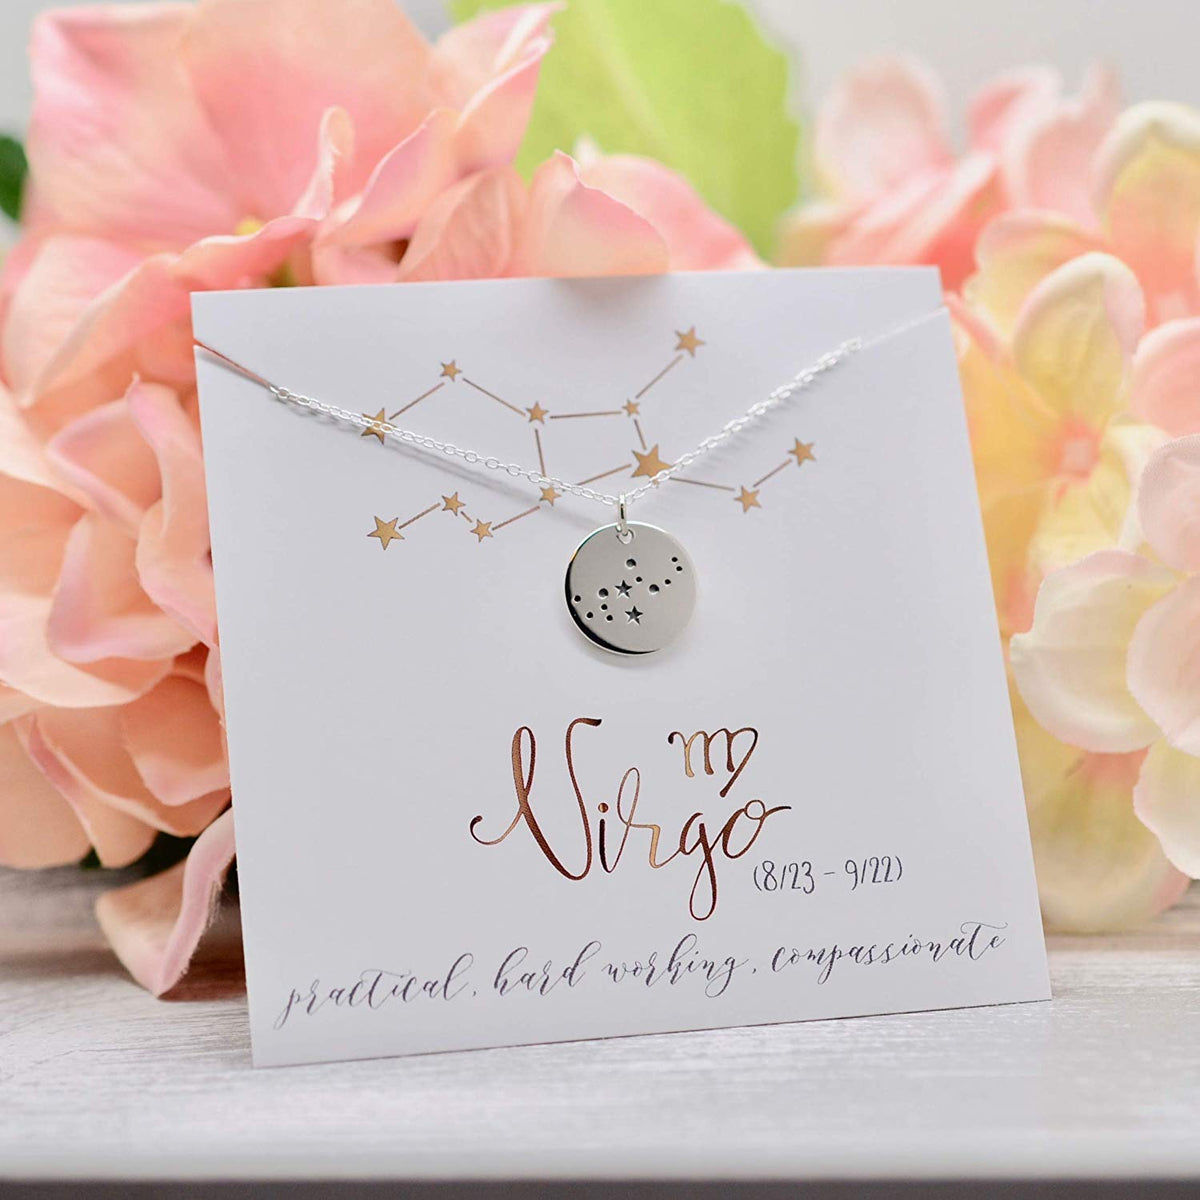 Virgo Zodiac Sign Sterling Silver Constellation Necklace - Love It Personalized